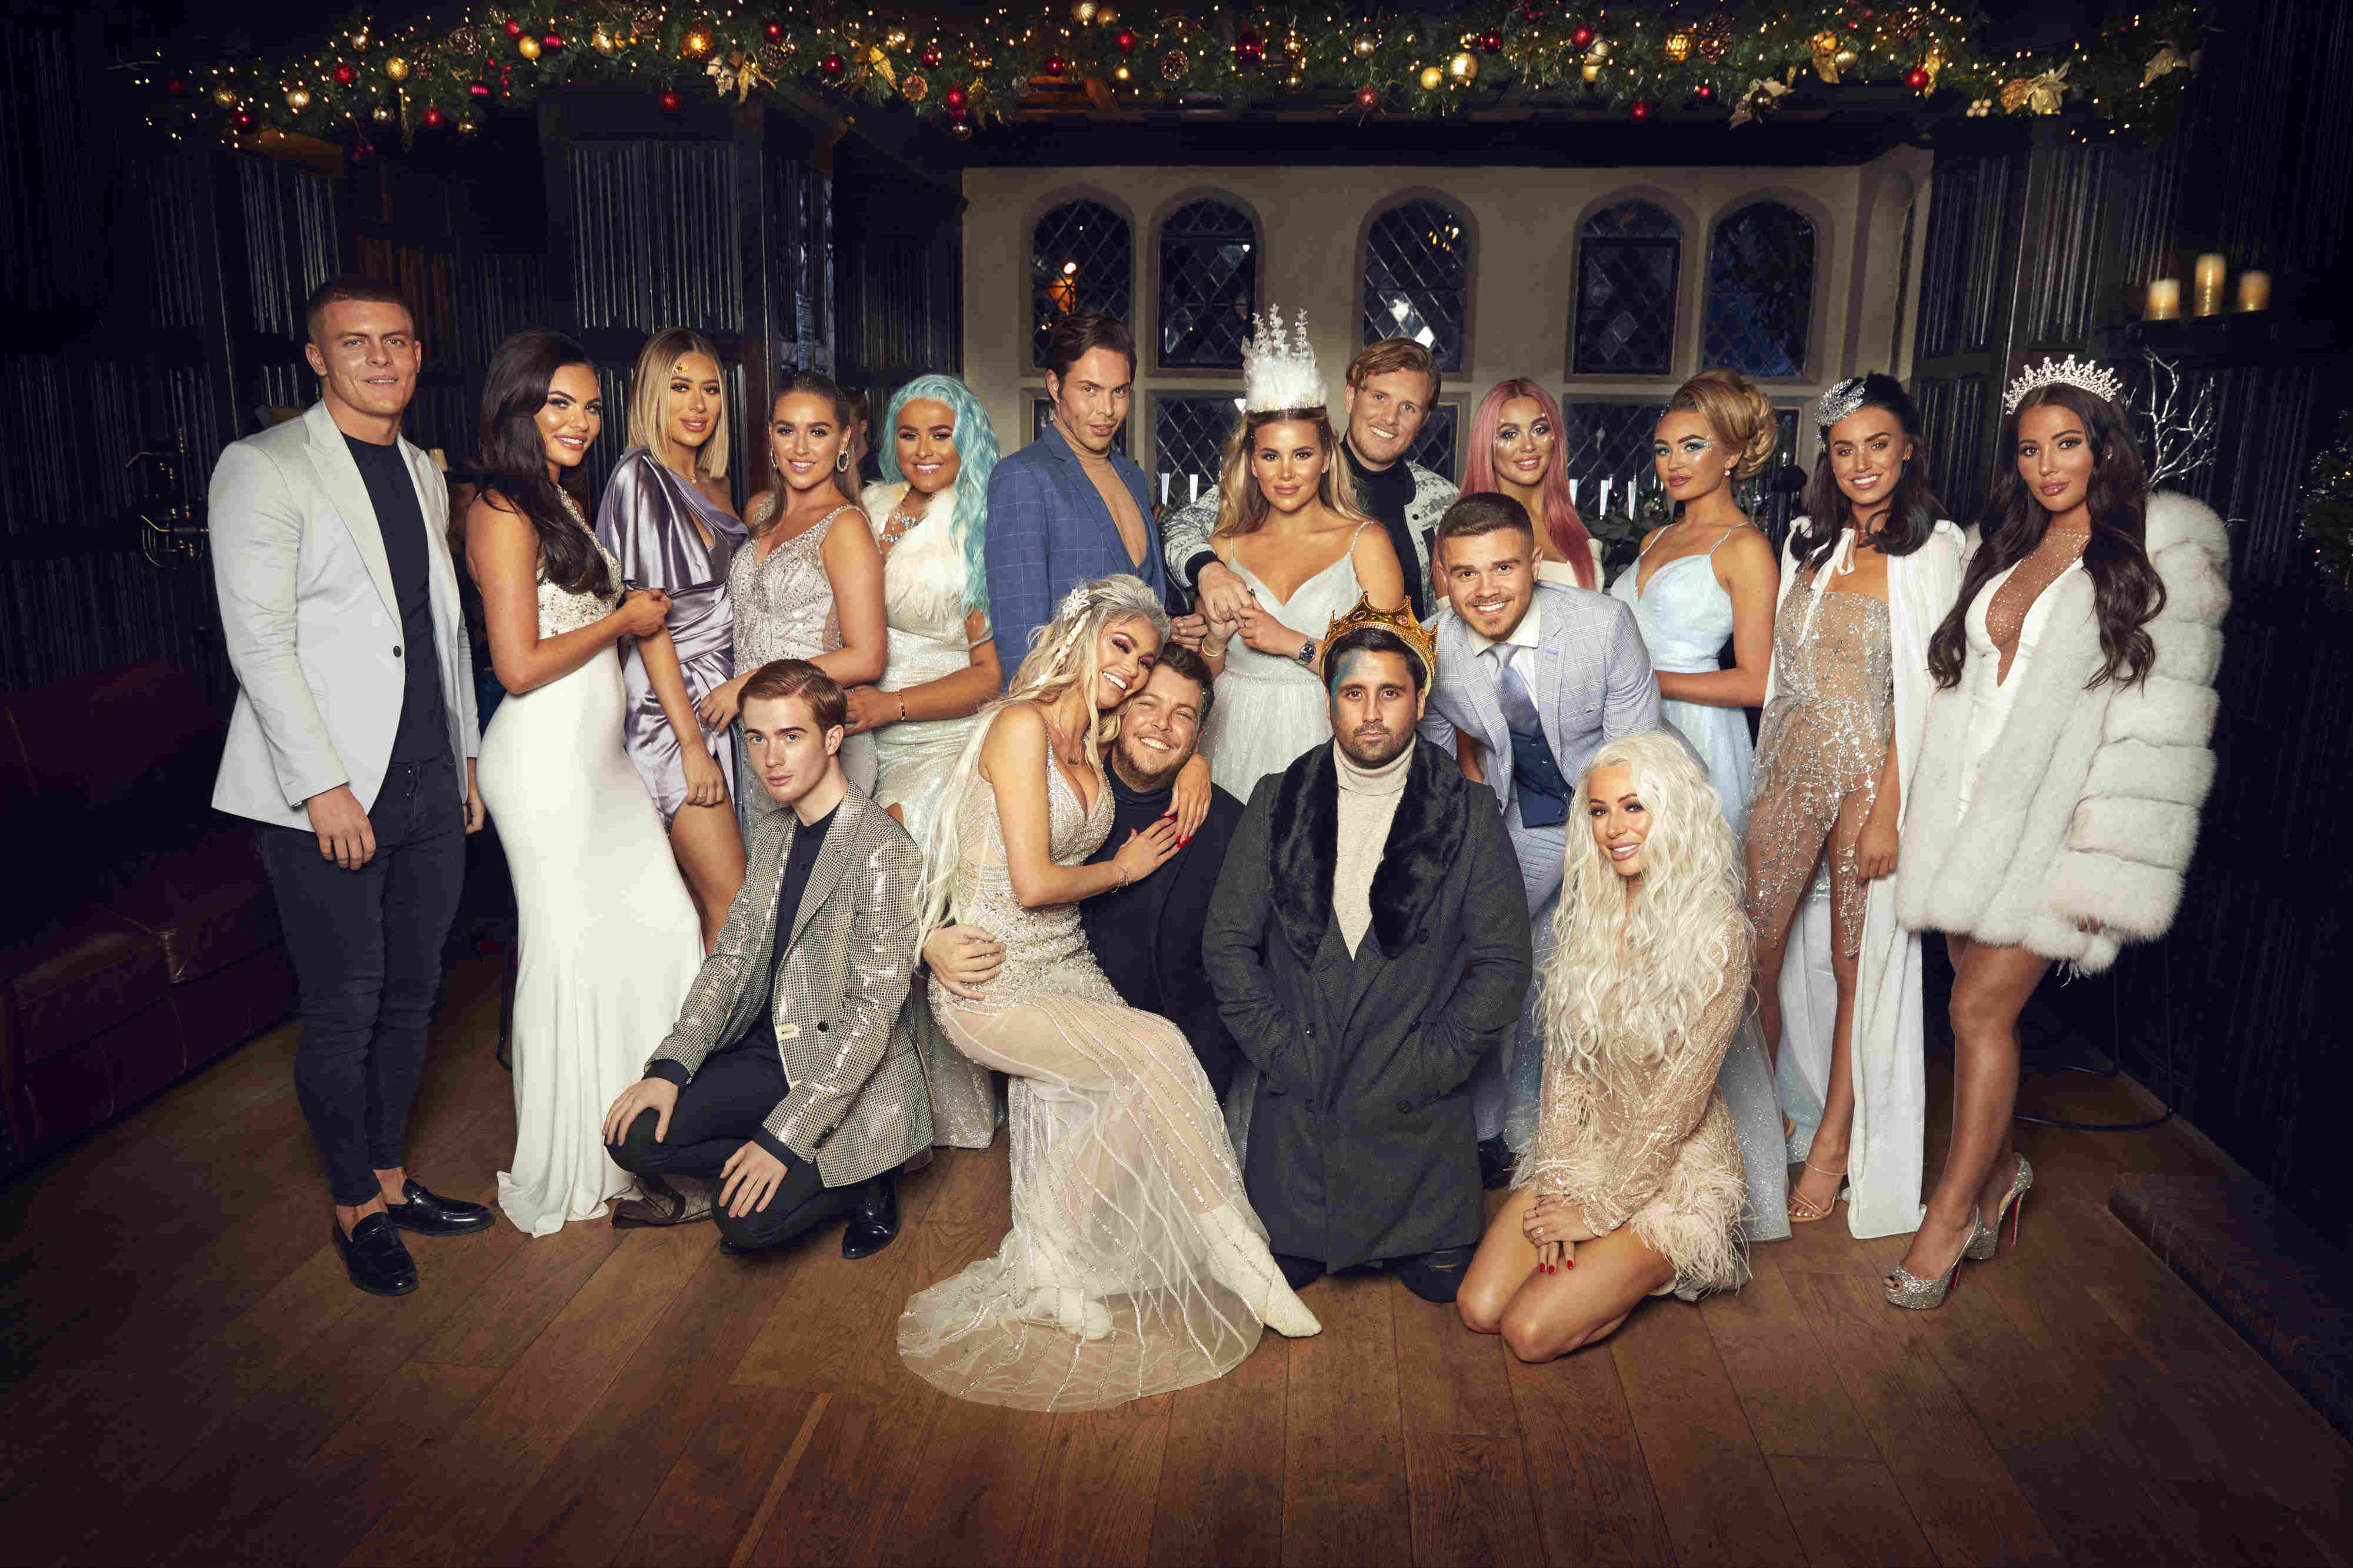 The Only Way is Essexmas Airs Sunday 15th December at 10pm on ITVBe